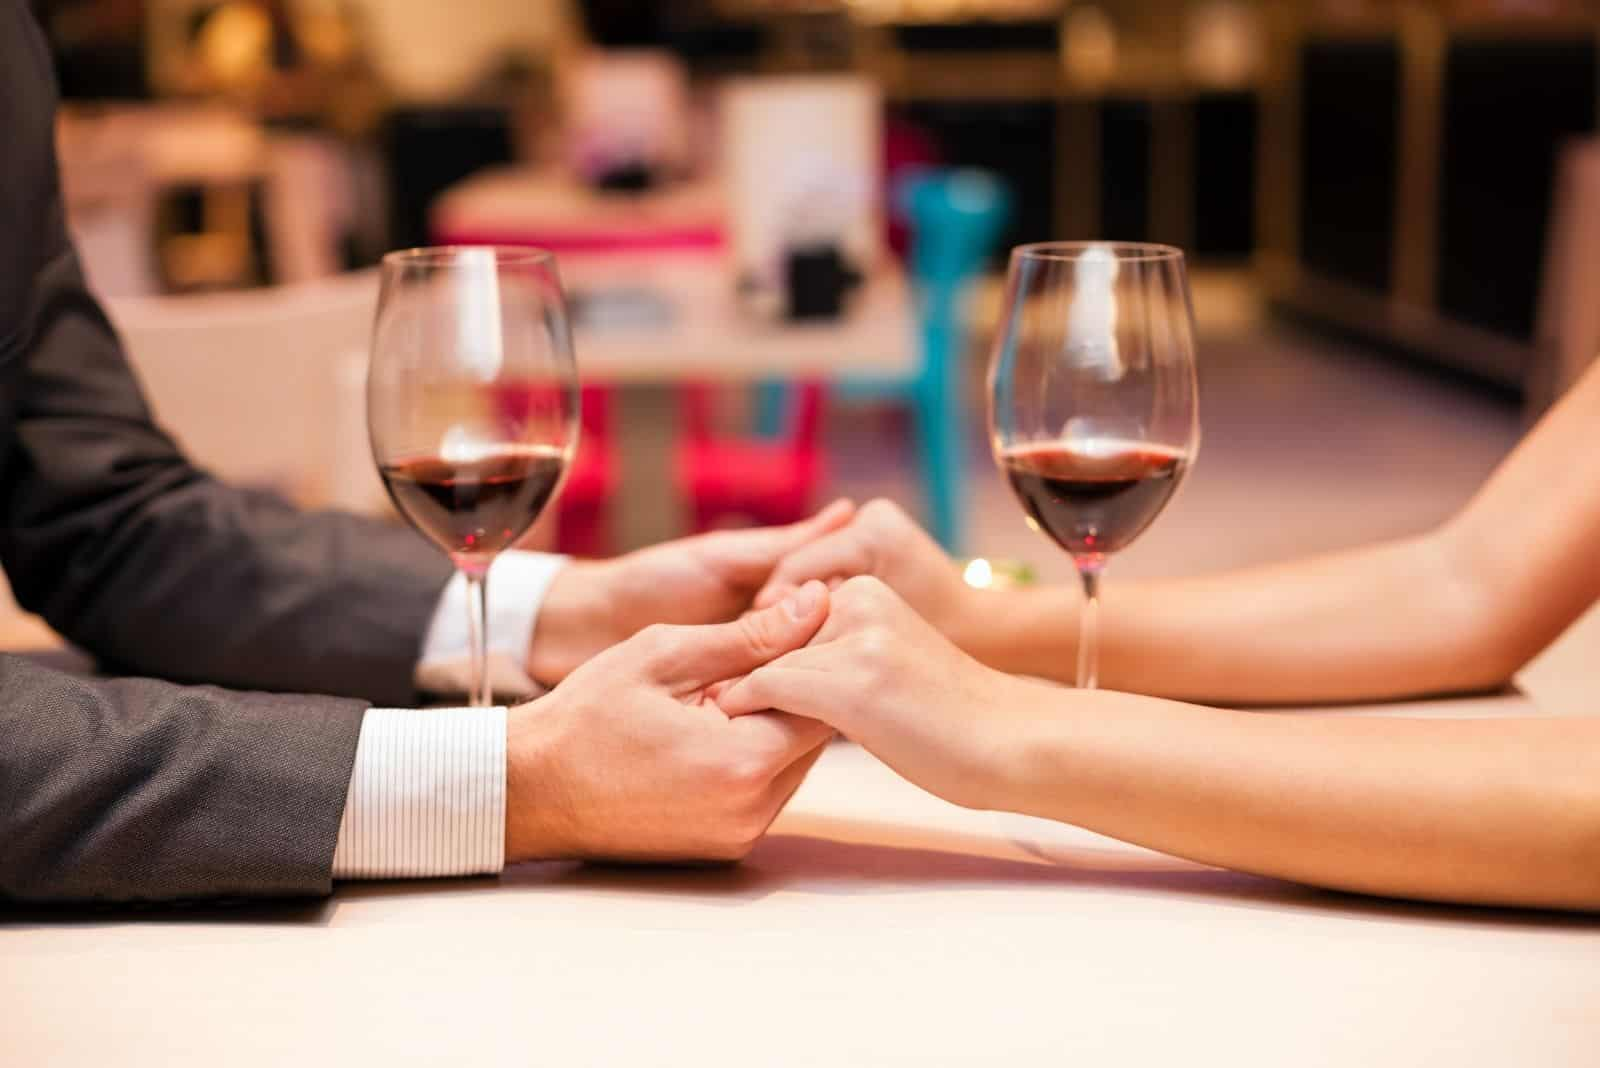 focus image on holding hands of a couple during a dinner date